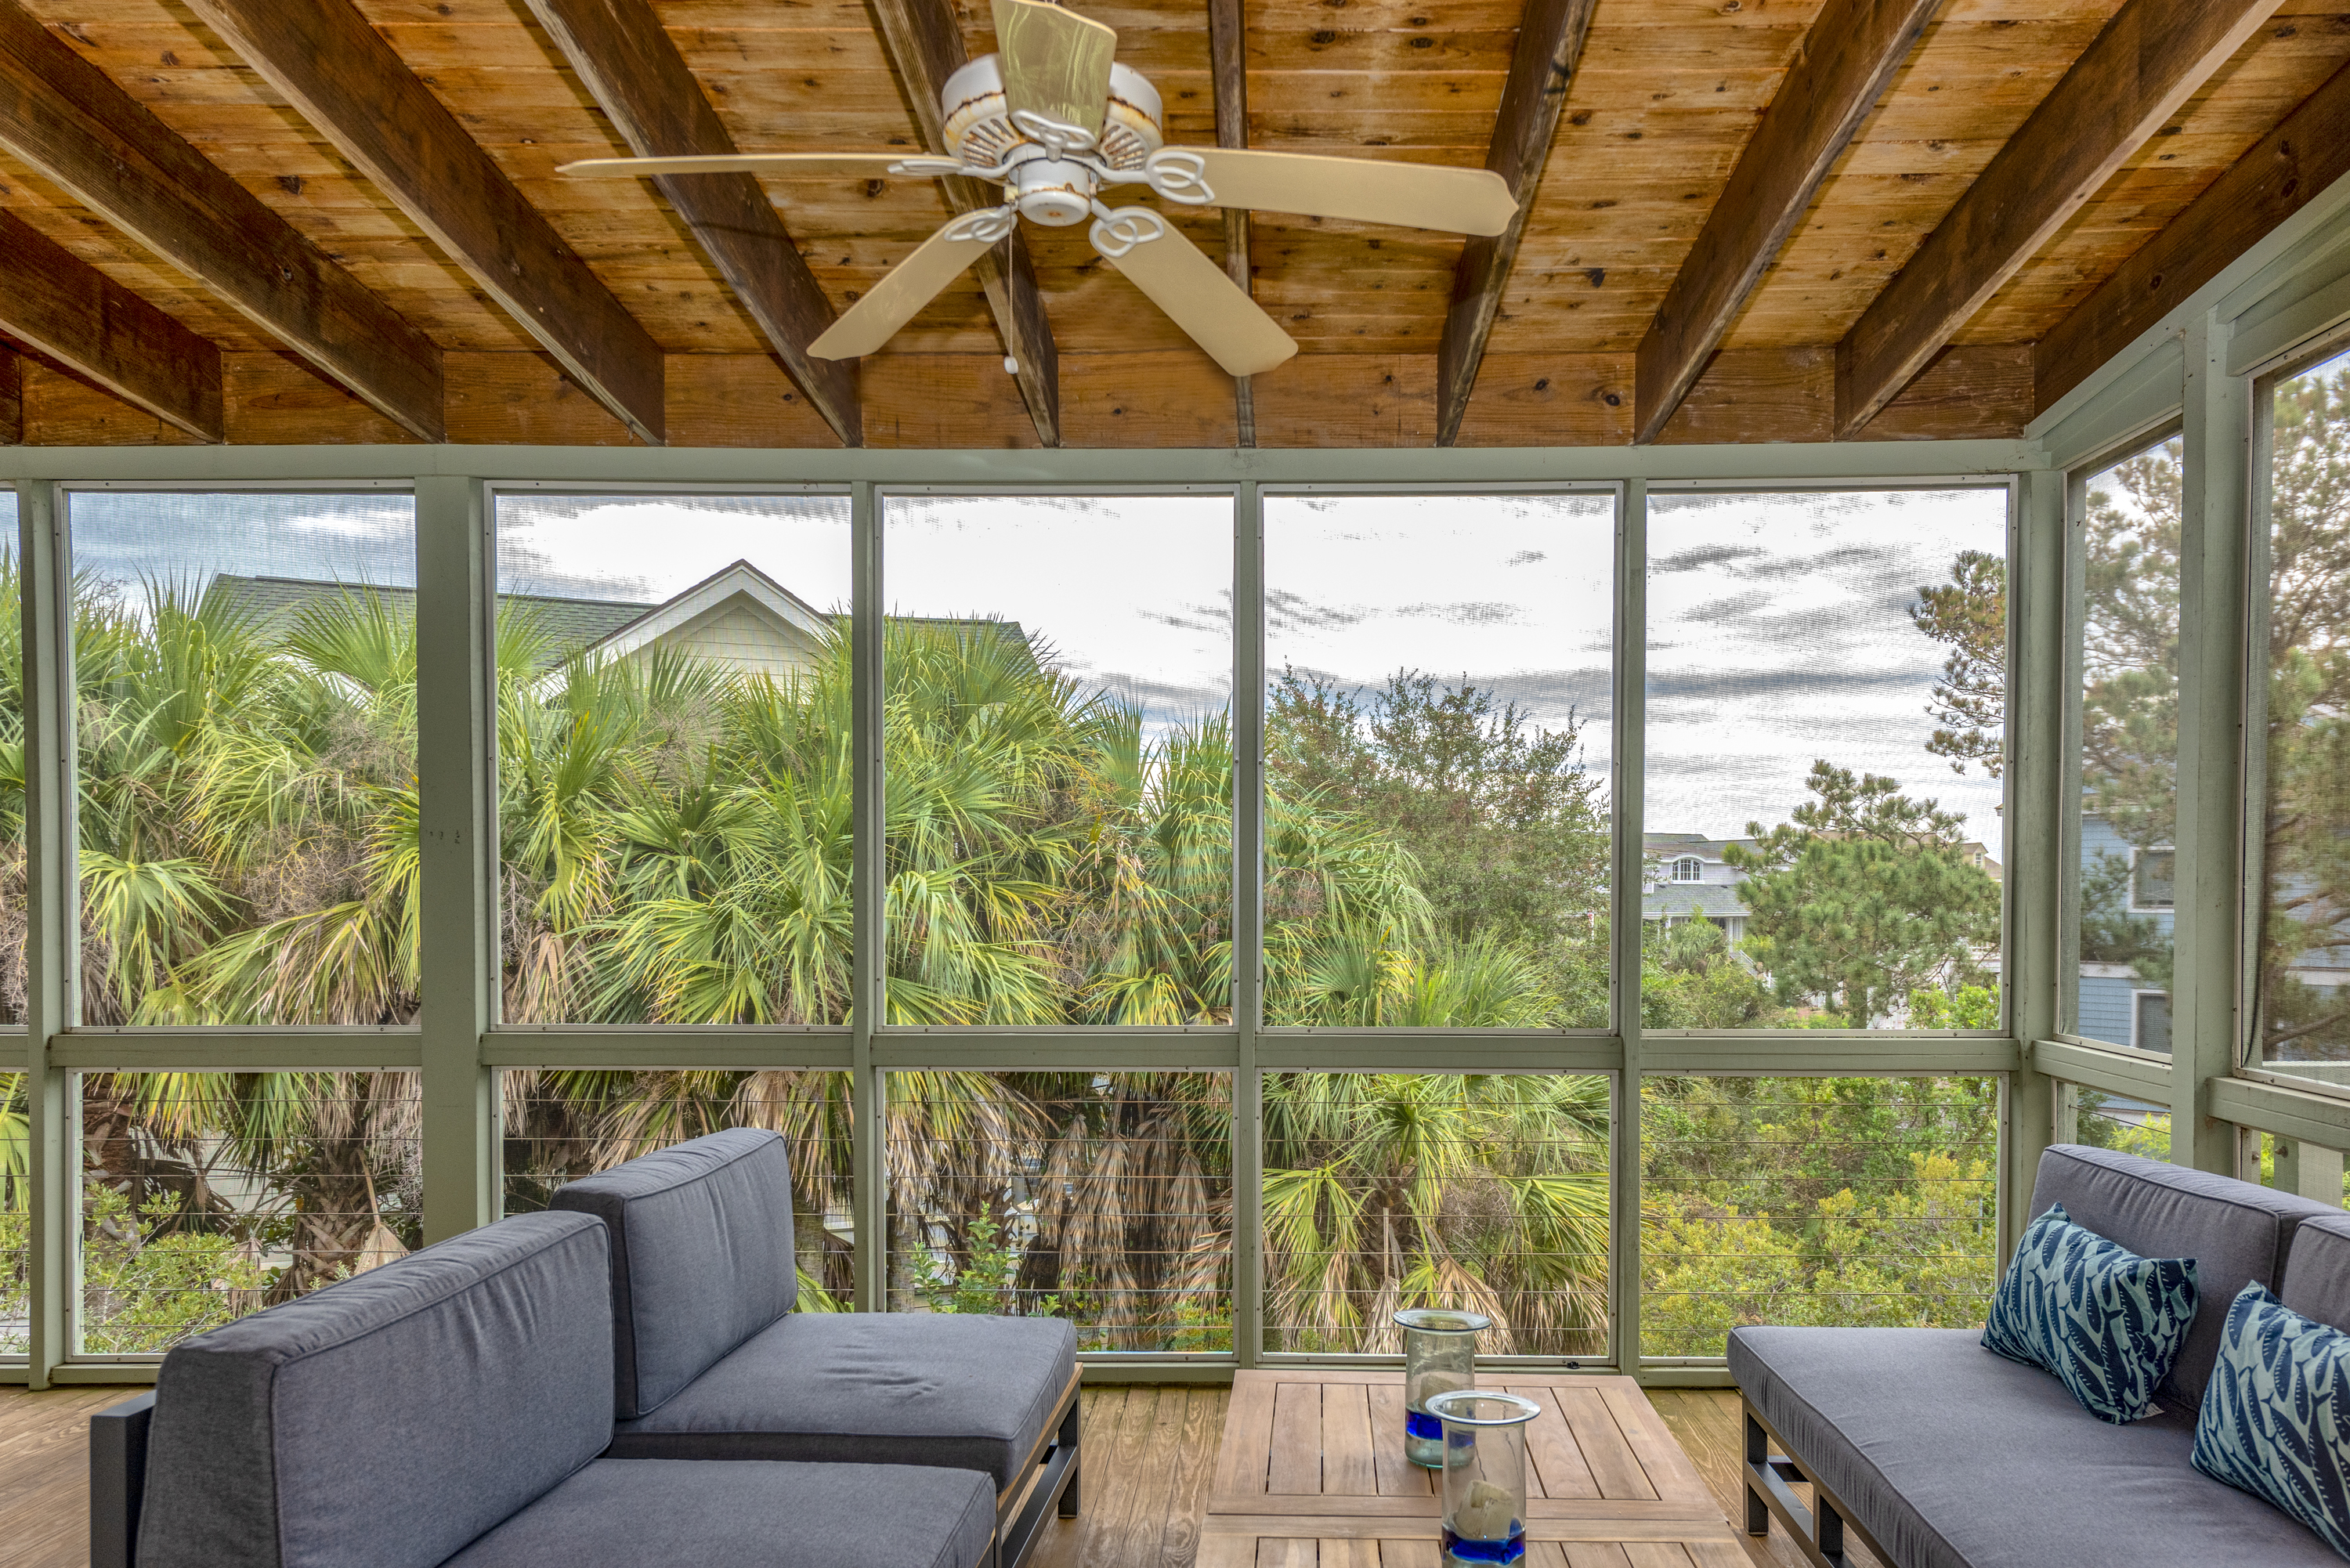 Amazing views from the large screened porch on the upper level